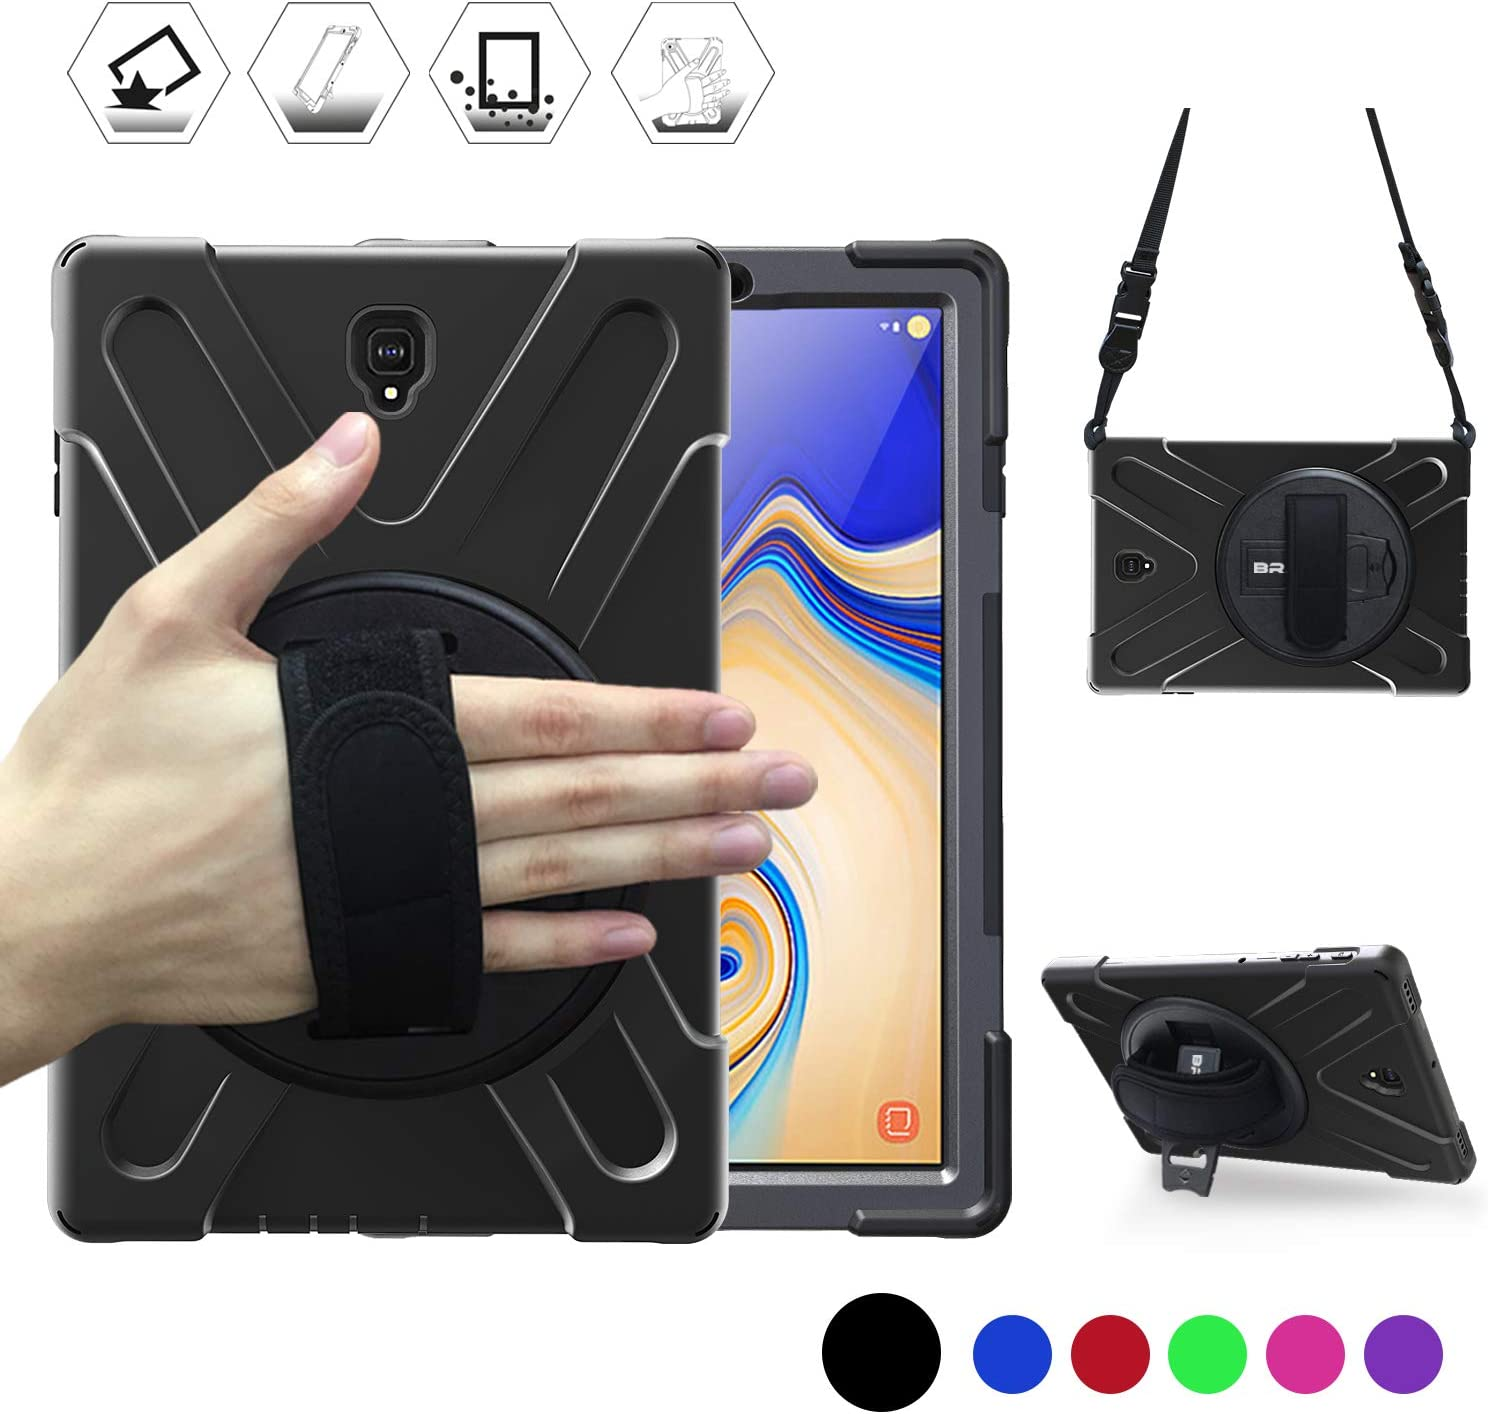 "Galaxy Tab S4 10.5"" Case, BRAECN Heavy Duty Shock-Proof Case with 360 Degree Kickstand/Hand Strap and Carrying Shoulder Strap for Samsung Galaxy Tab S4 10.5 inch 2018 Tablet SM-T830/T835/T837 (Black)"